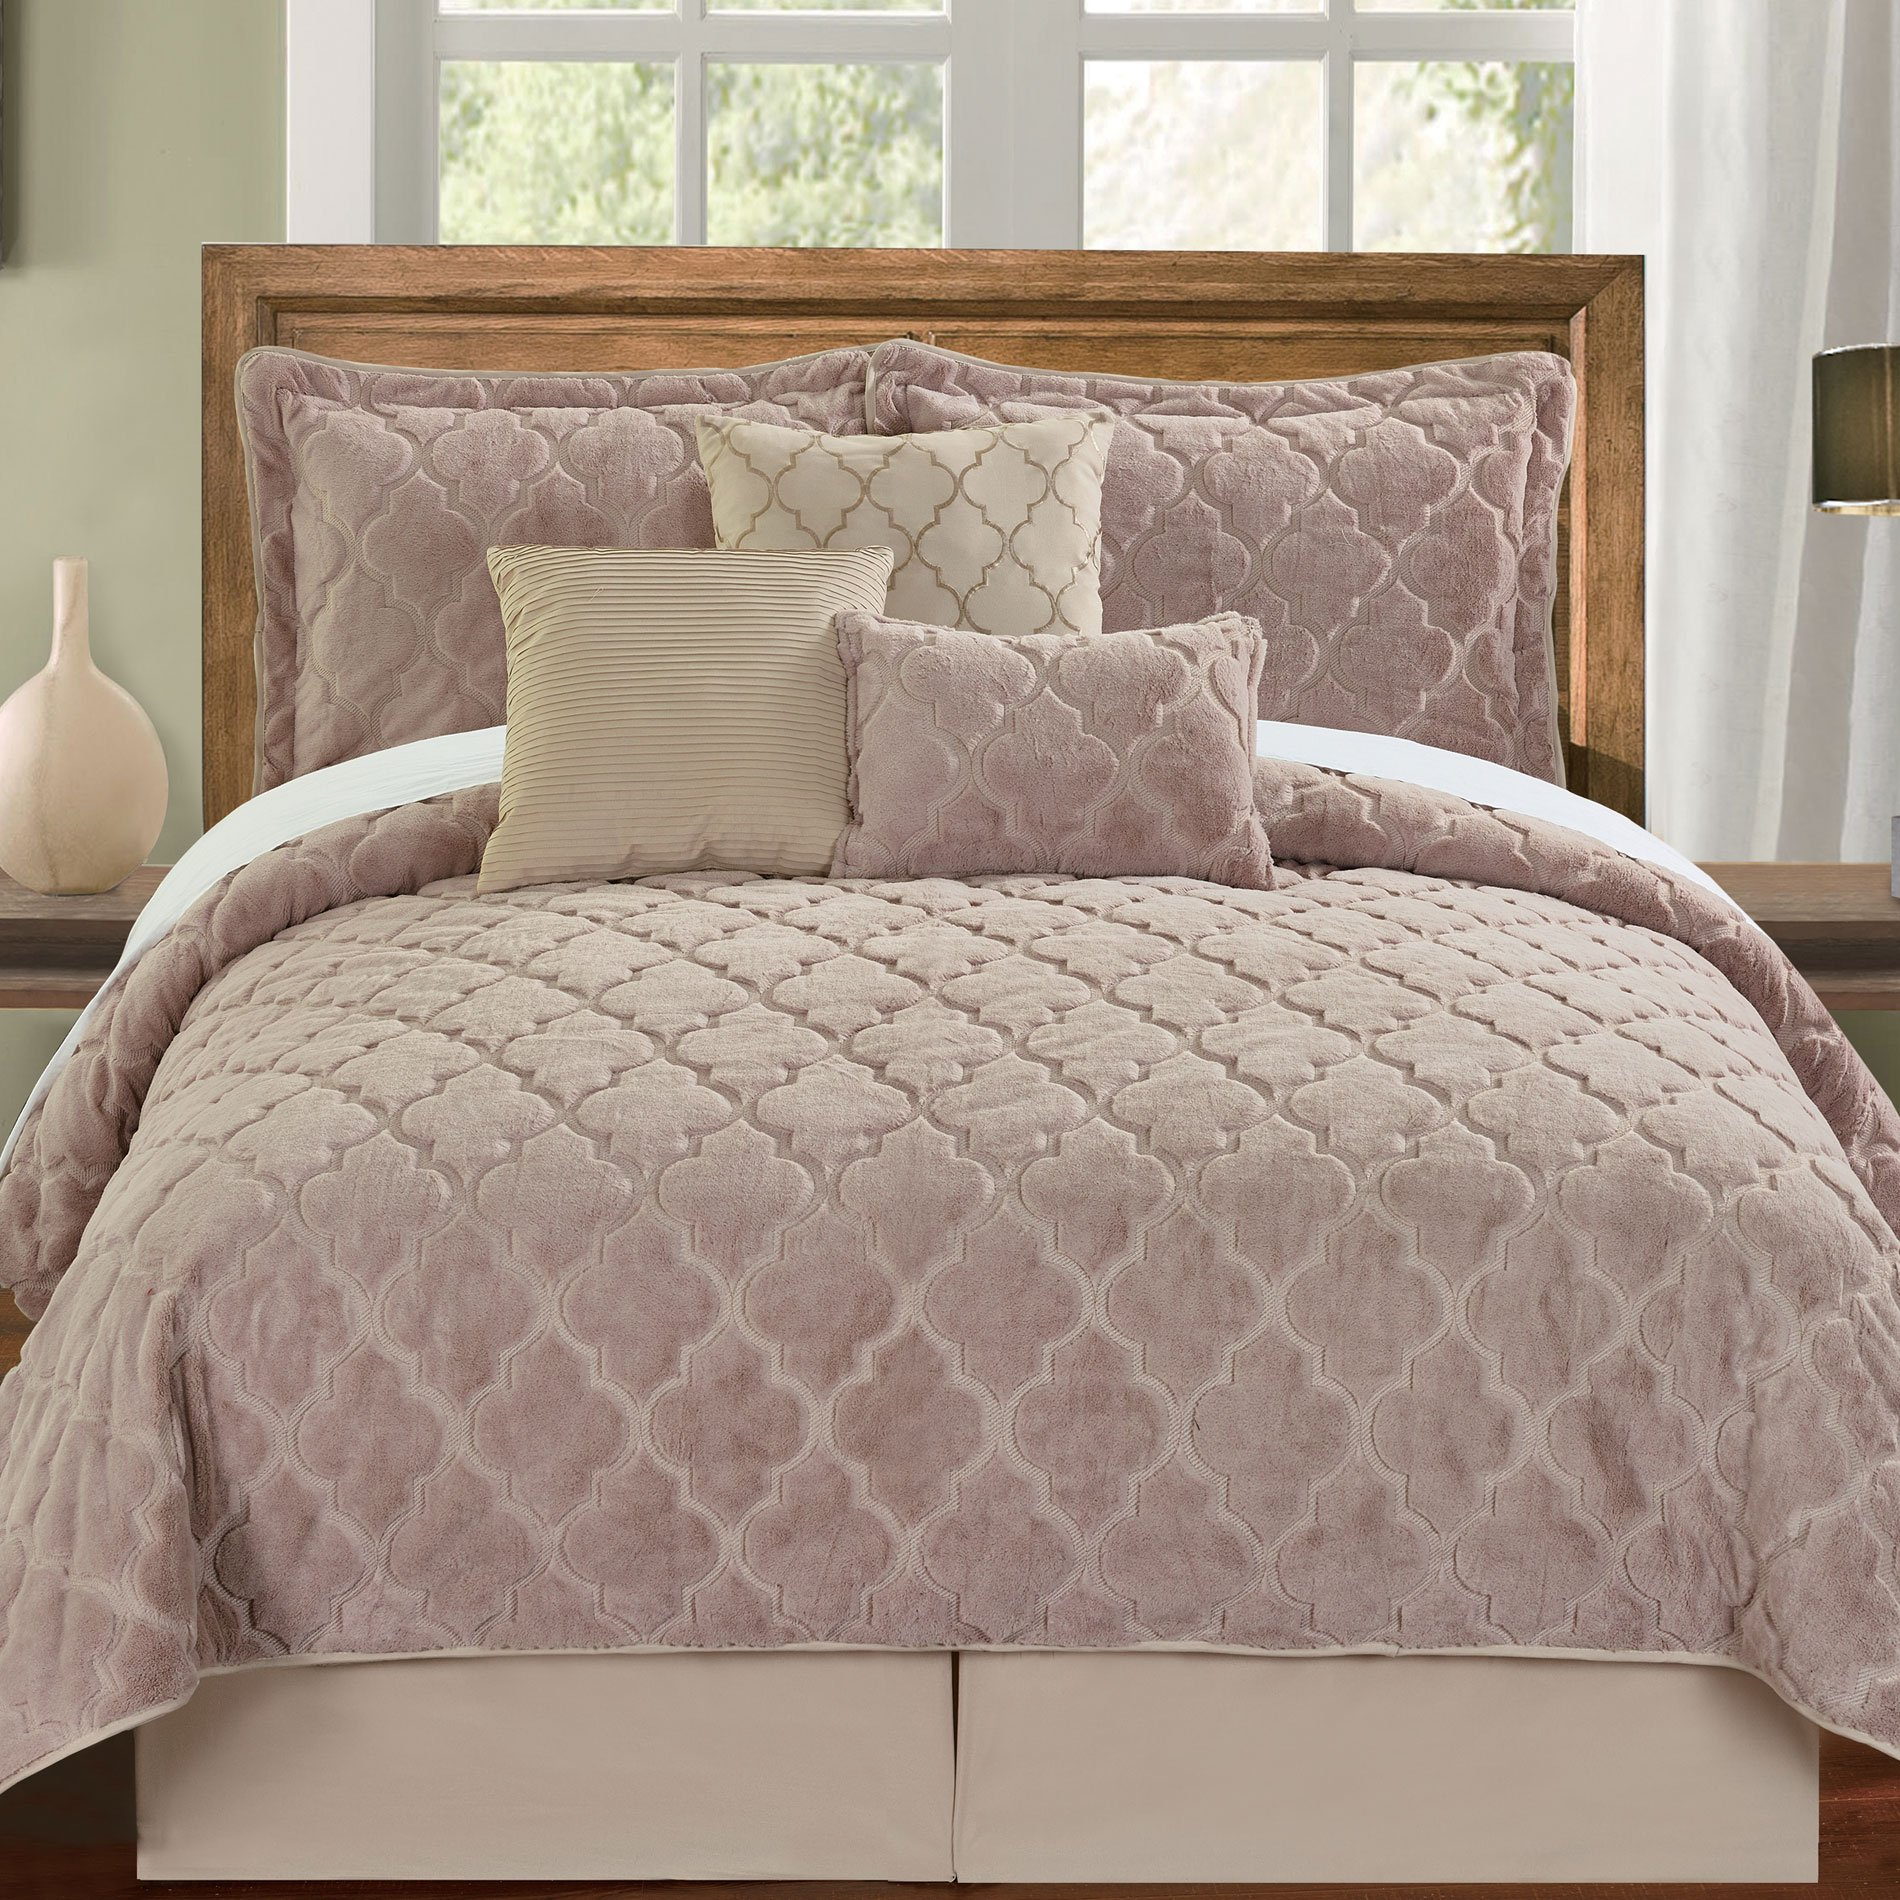 Serenta Faux Fur Ogee Embroidery 7 Piece Bedspread Quilts Set, Queen, Taupe